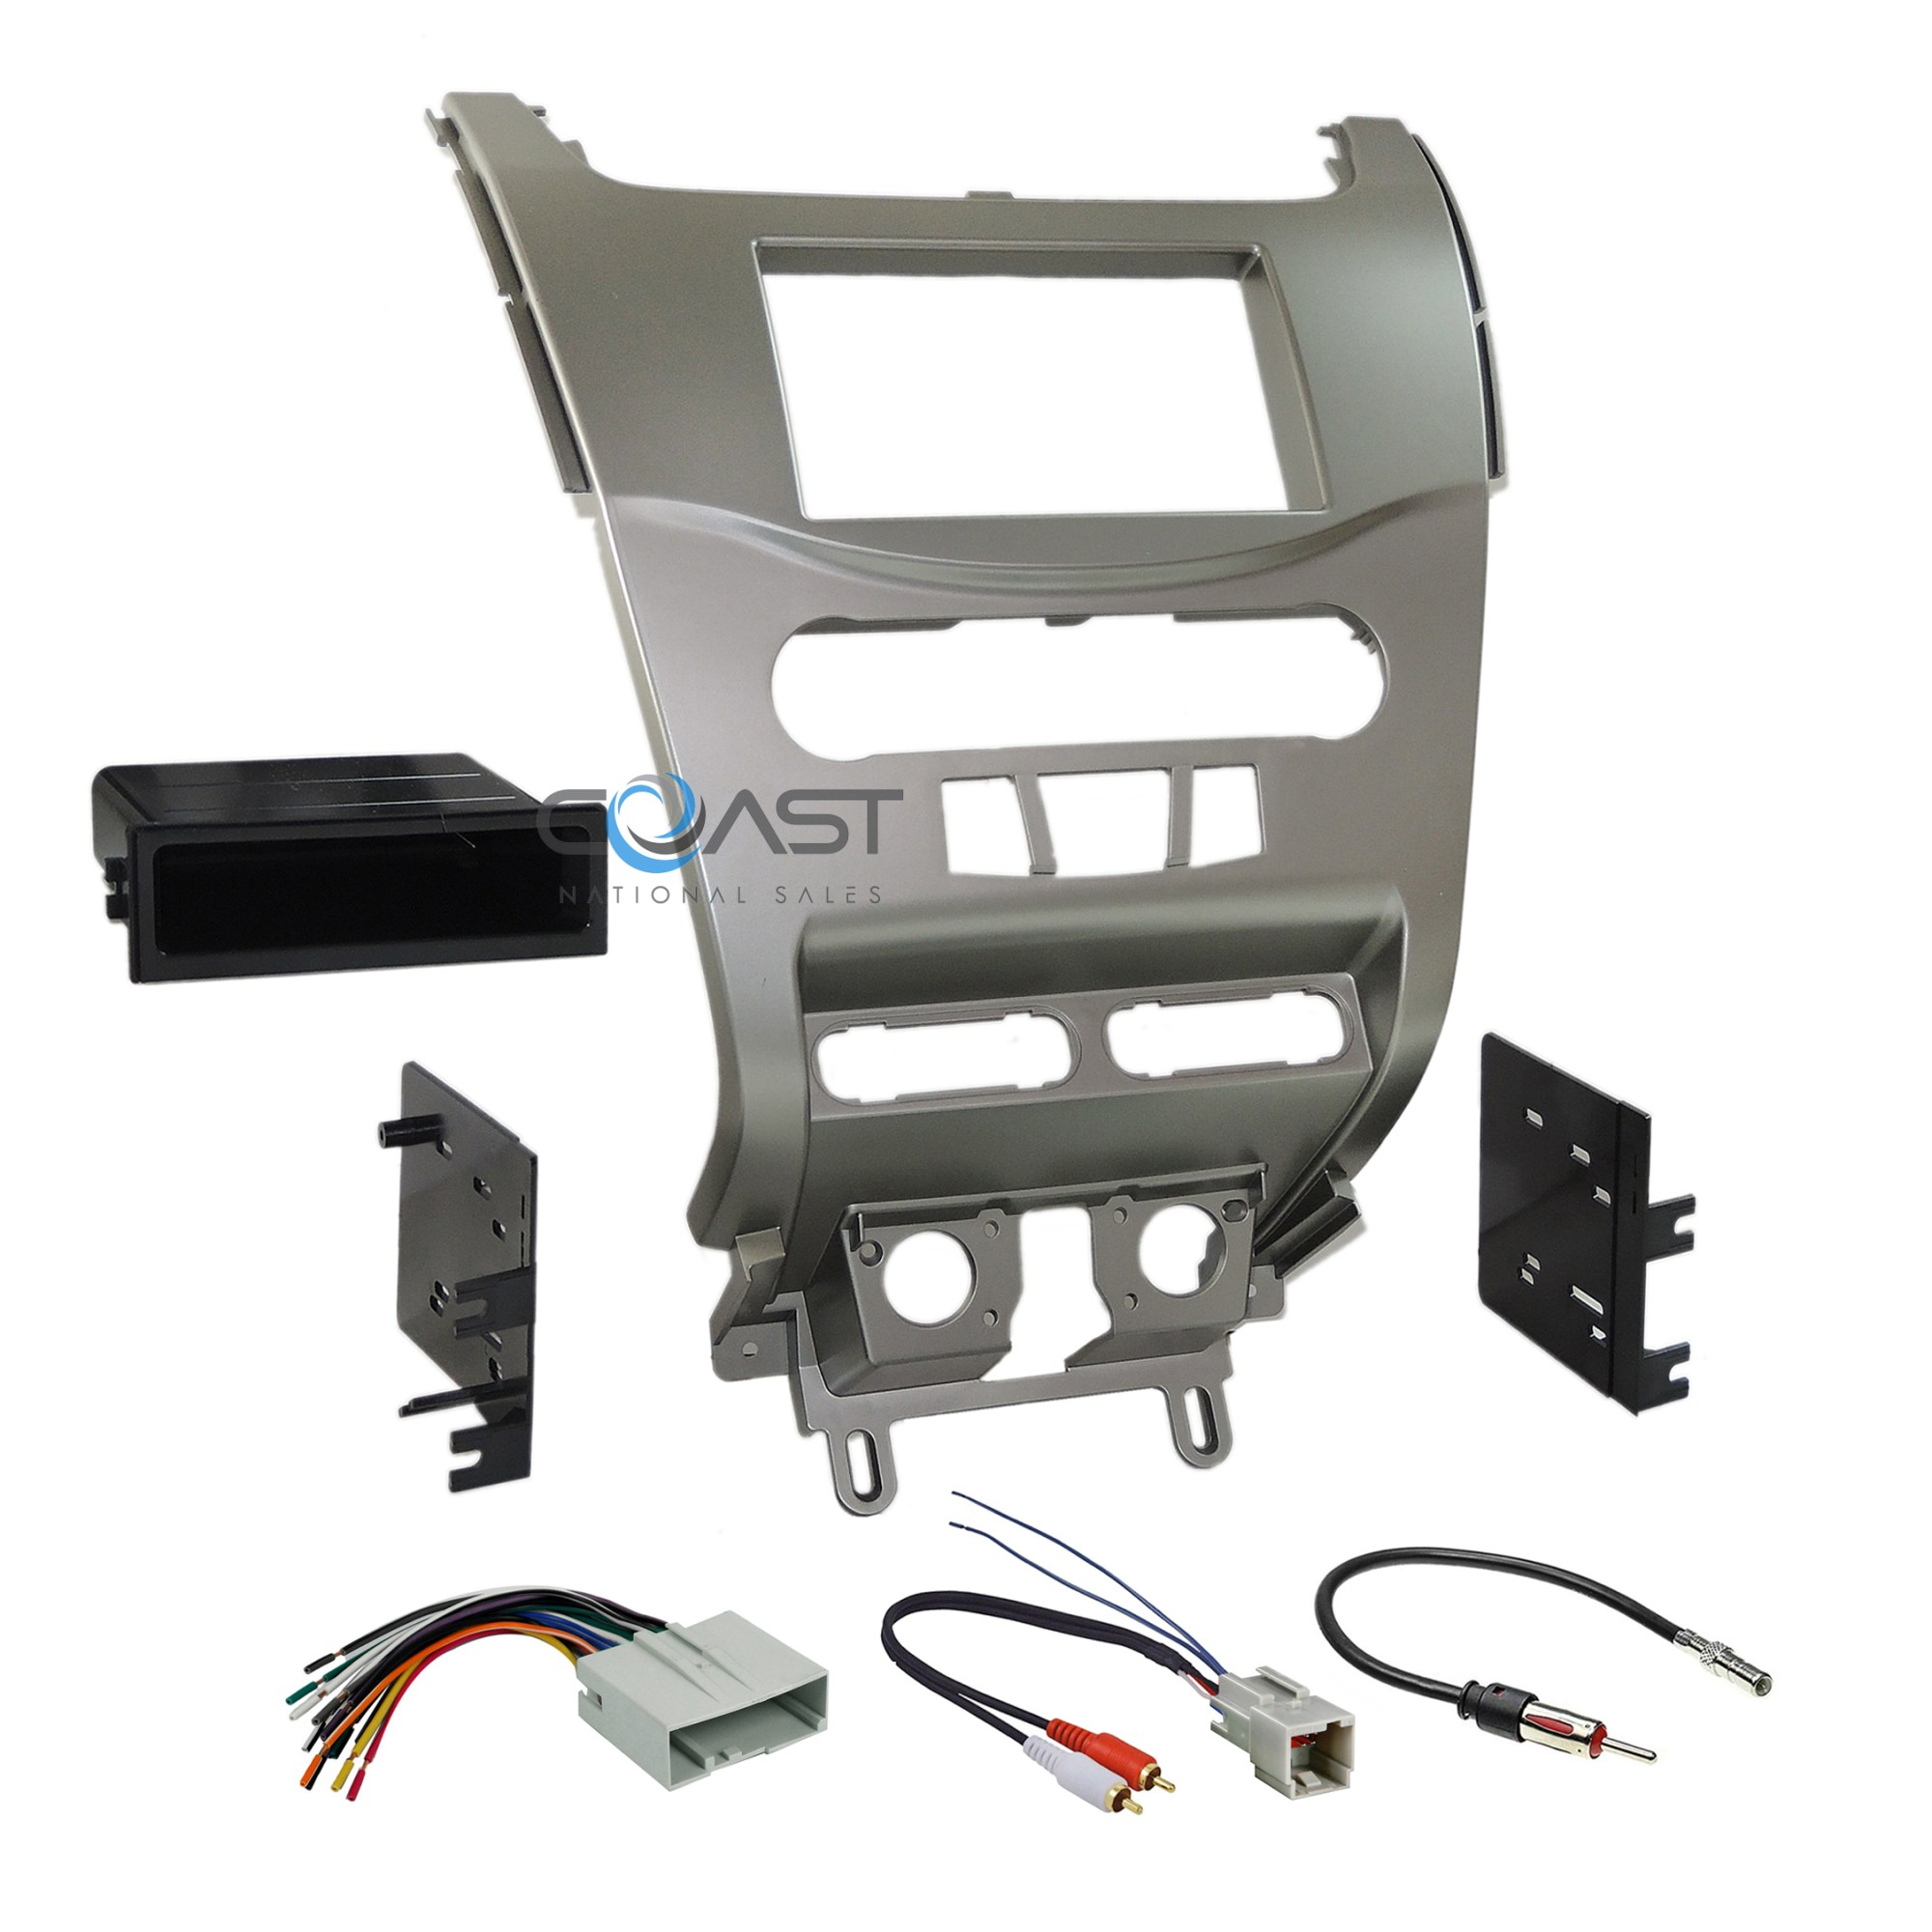 hight resolution of ford focus wiring harness kits wiring diagram car radio stereo silver dash kit panel wire harness